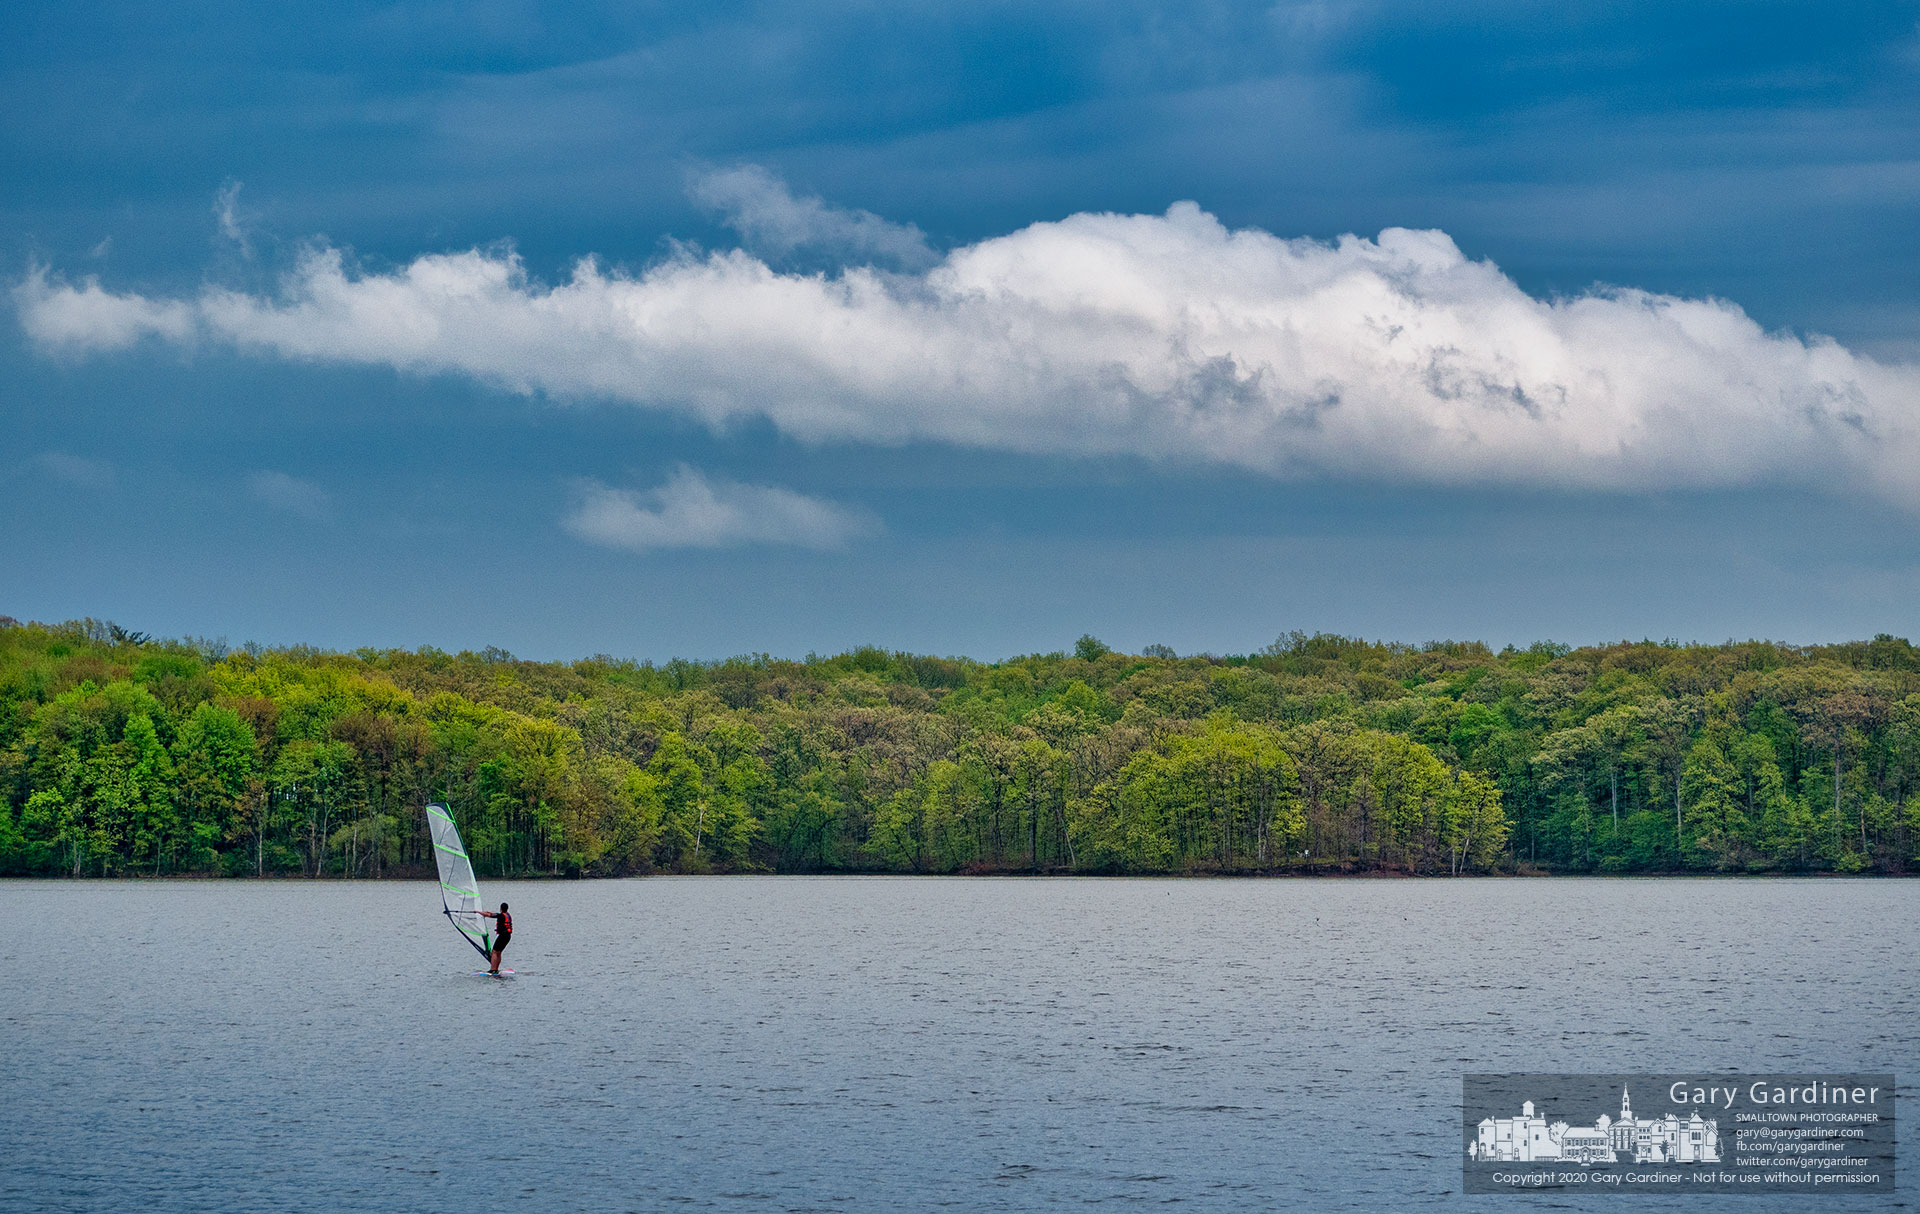 A windsurfer navigates his way across Hoover Reservoir against a panorama of spring colors on the shoreline and stormy weather in the skies. My Final Photo for May 14, 2020.